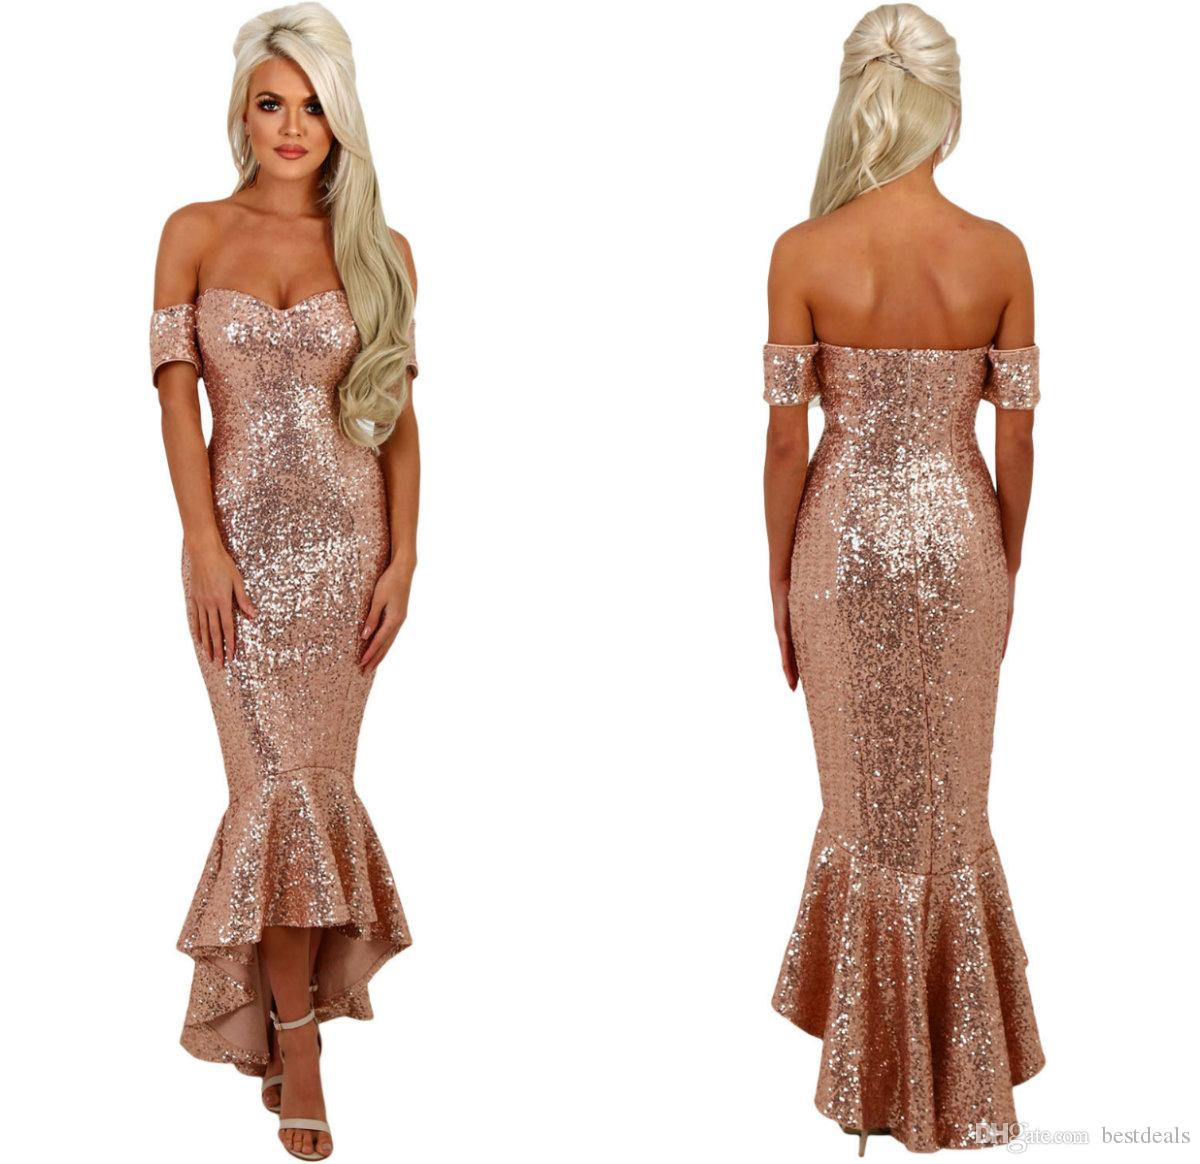 2018 sparkly rose gold sequins bridesmaid dresses mermaid off the 2018 sparkly rose gold sequins bridesmaid dresses mermaid off the shoulder hi lo prom dress cheap junior bridesmaid gowns plum colored bridesmaid dresses ombrellifo Choice Image